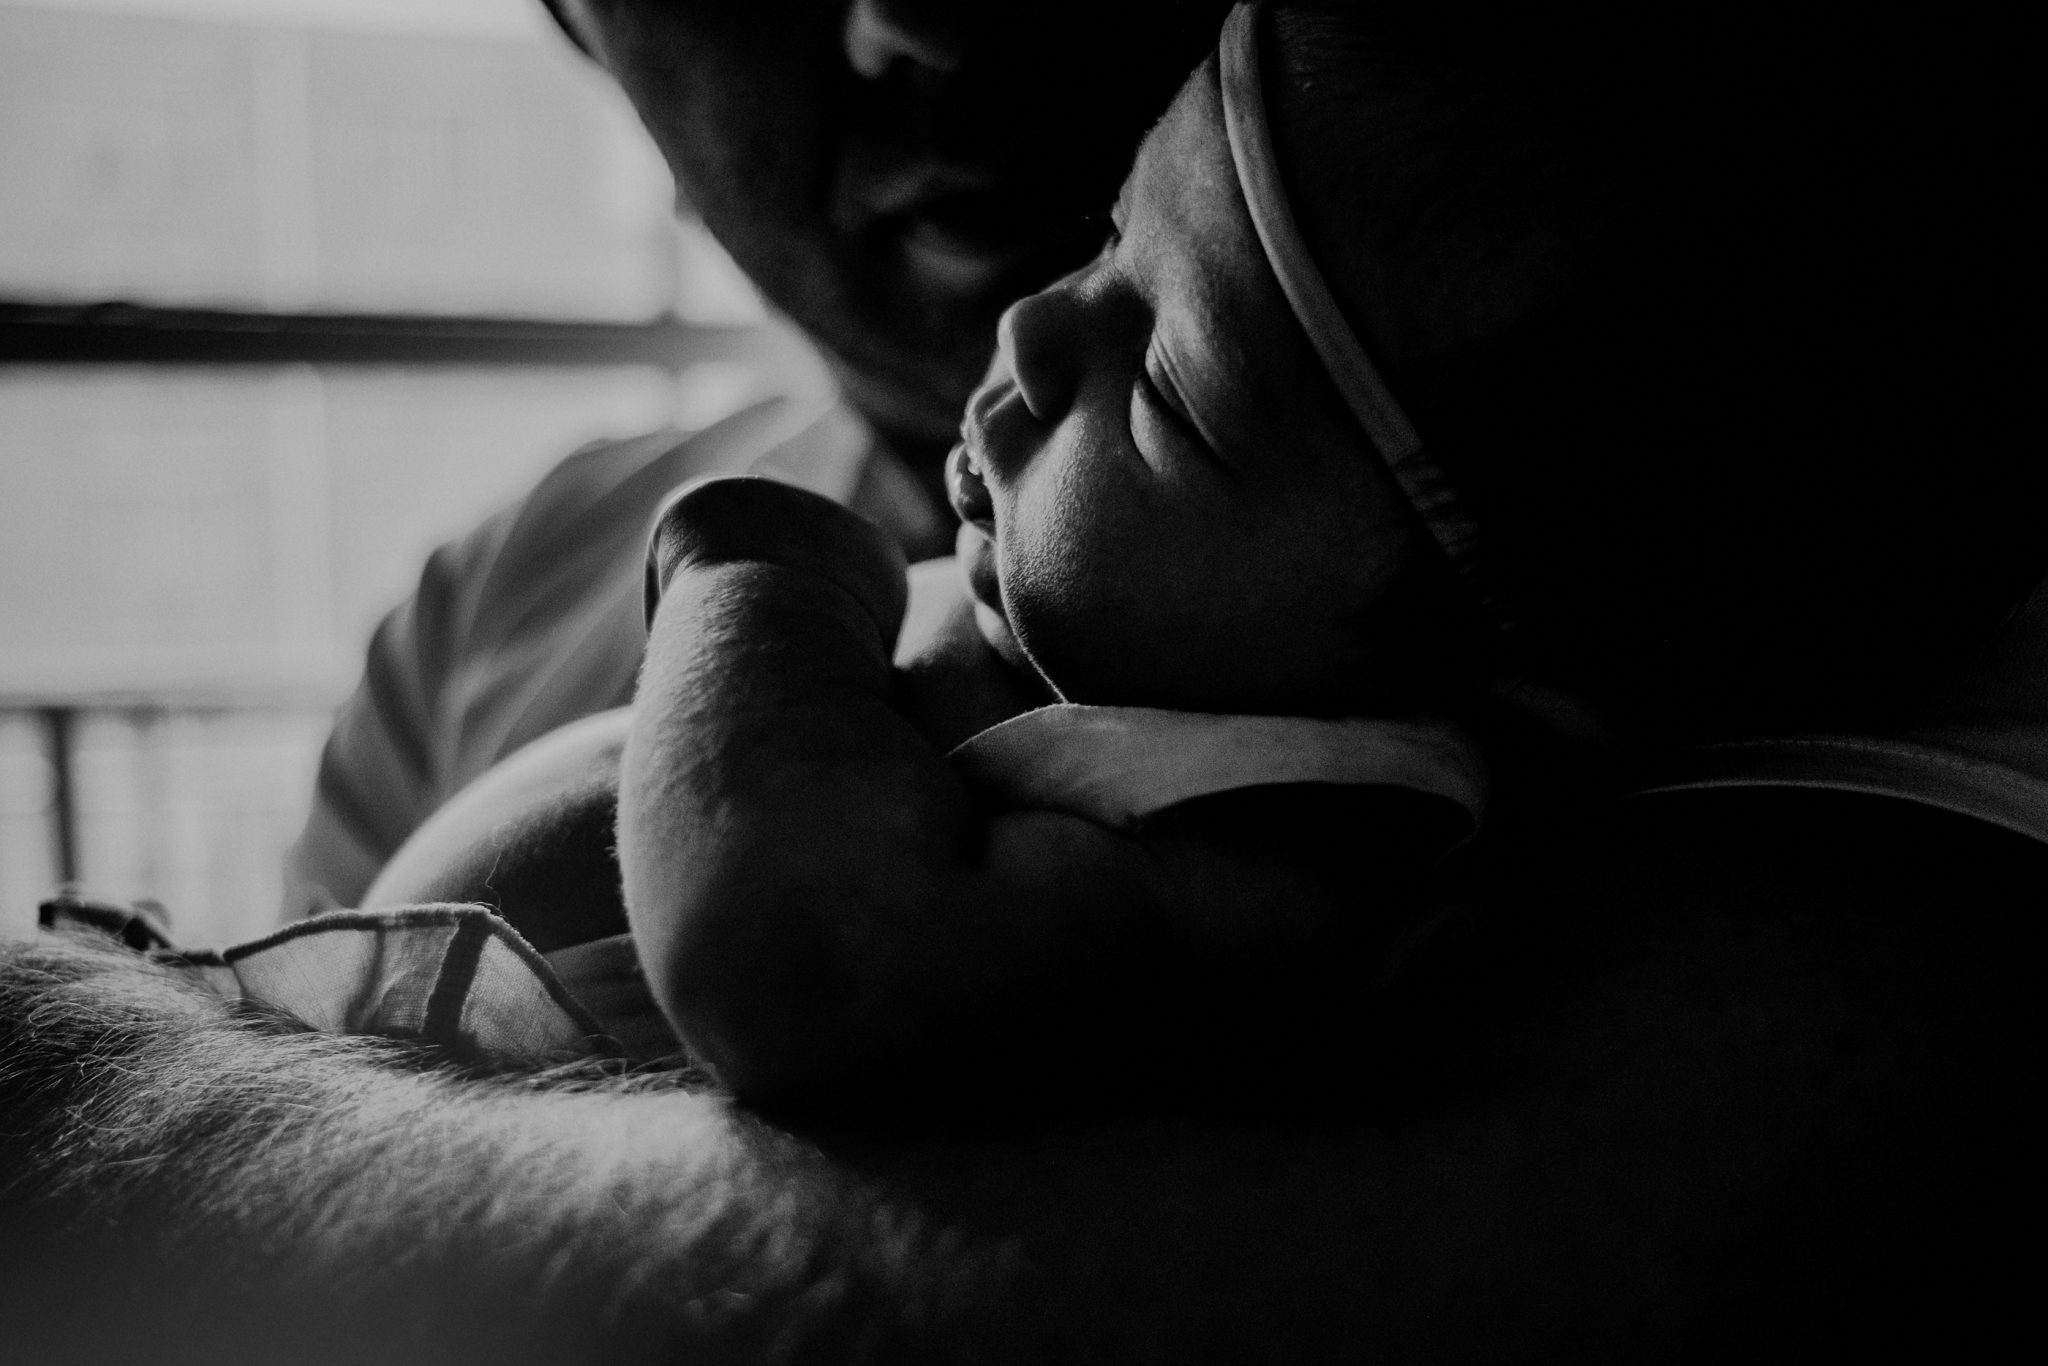 father's arm in foreground of black and white image holding baby